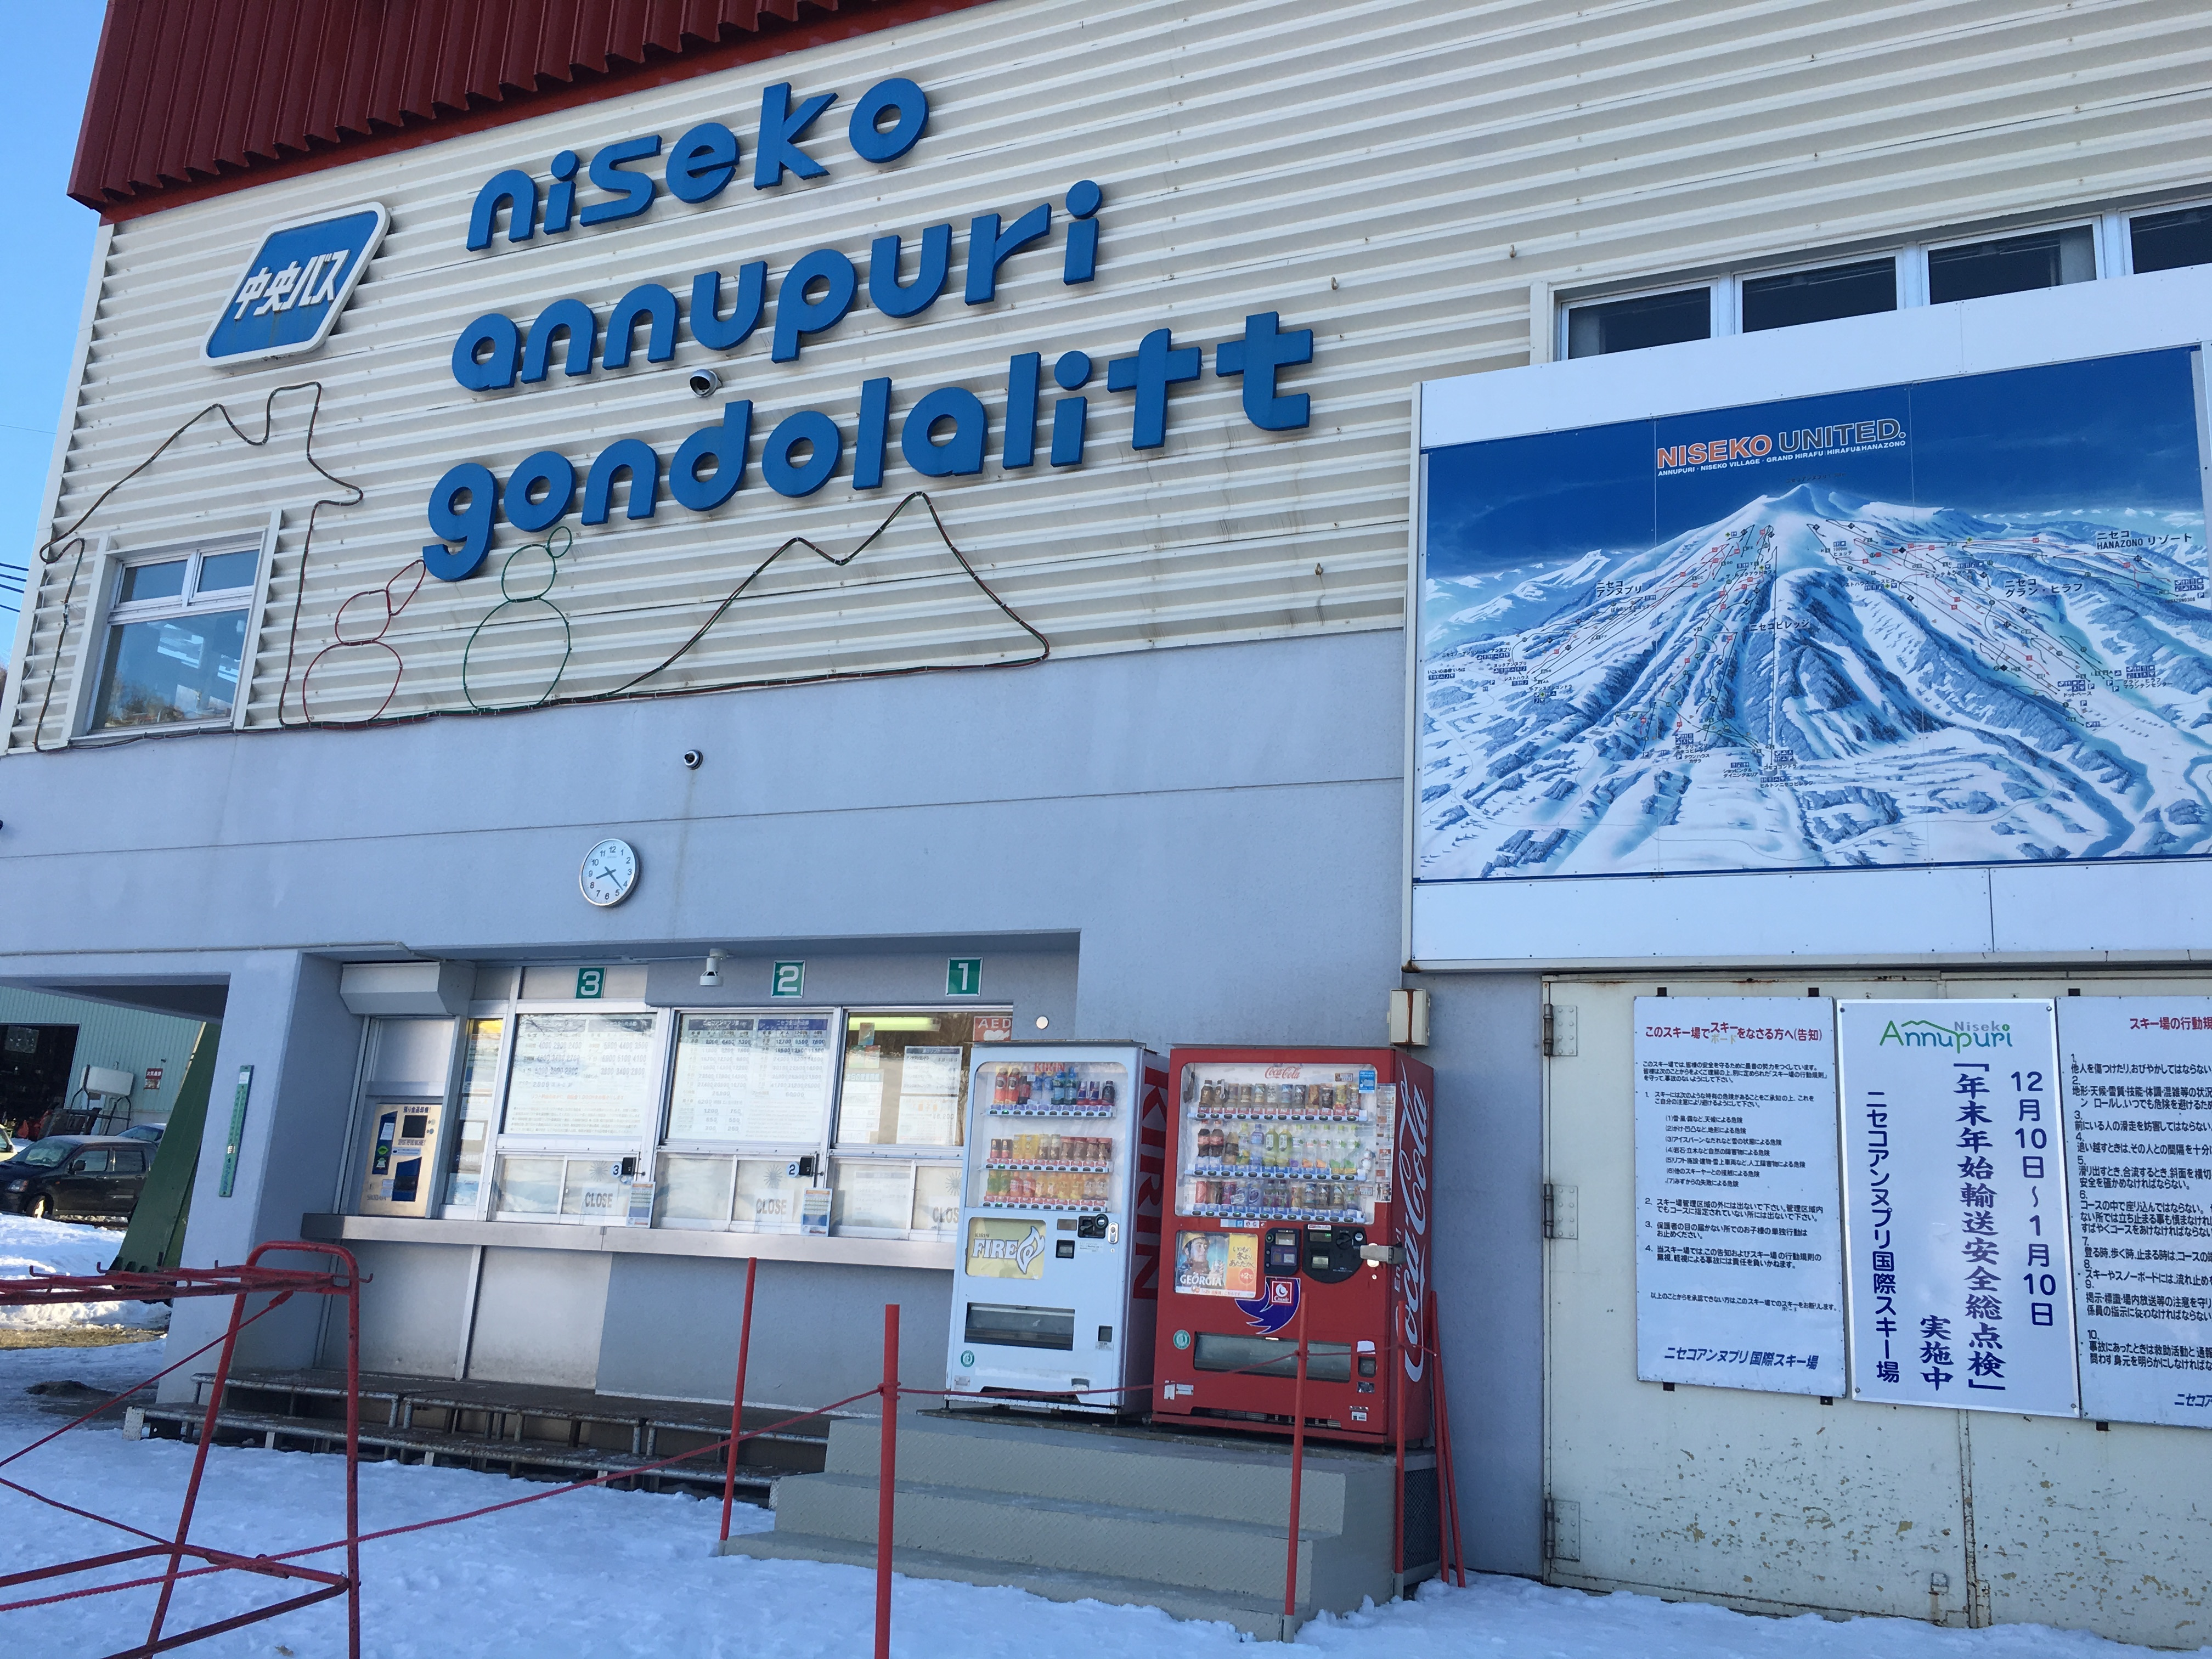 Annupuri ticket booth. A single ski pass gives you access to all mountains. Photo Credit: Tetsuji Sakakibara Flickr CC